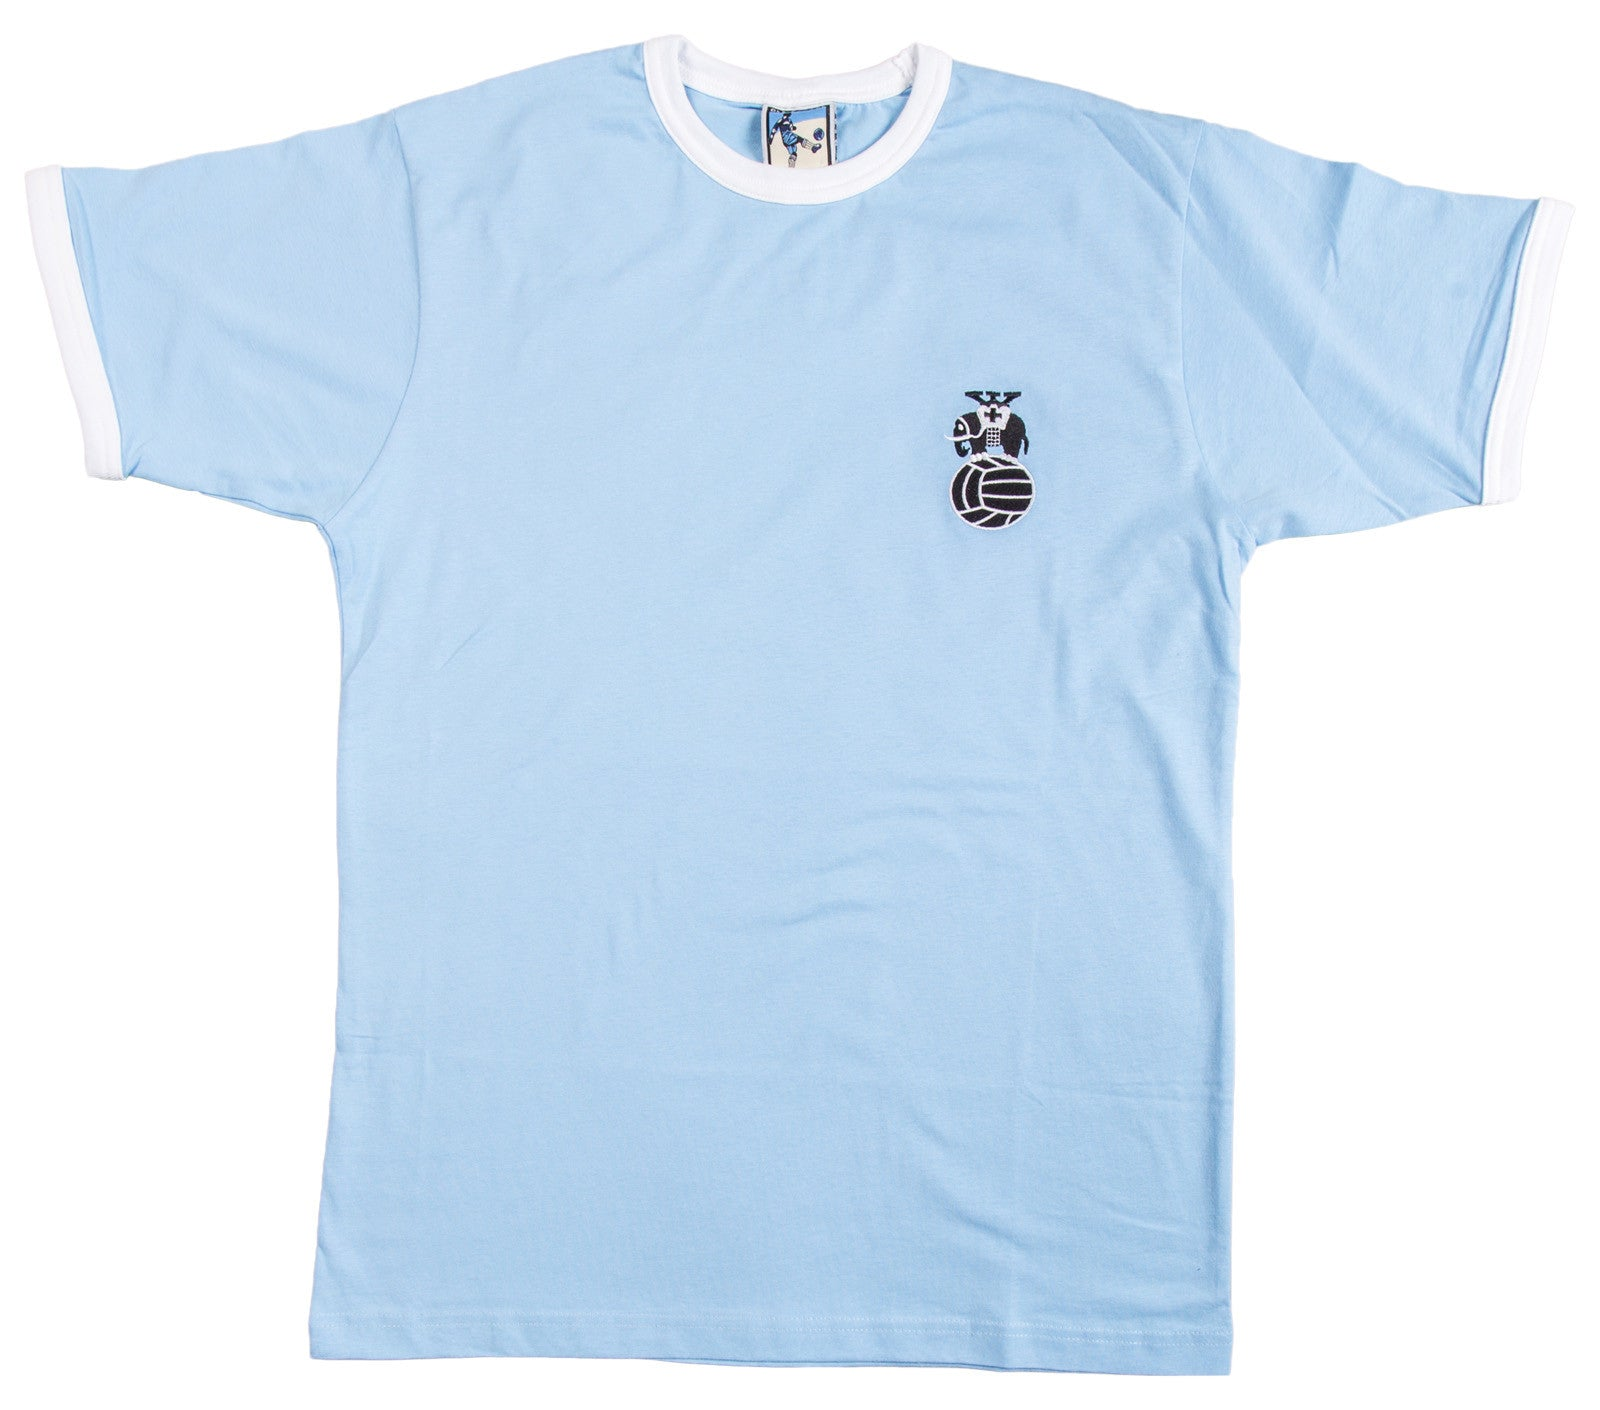 Coventry City T-Shirt - Old School Football